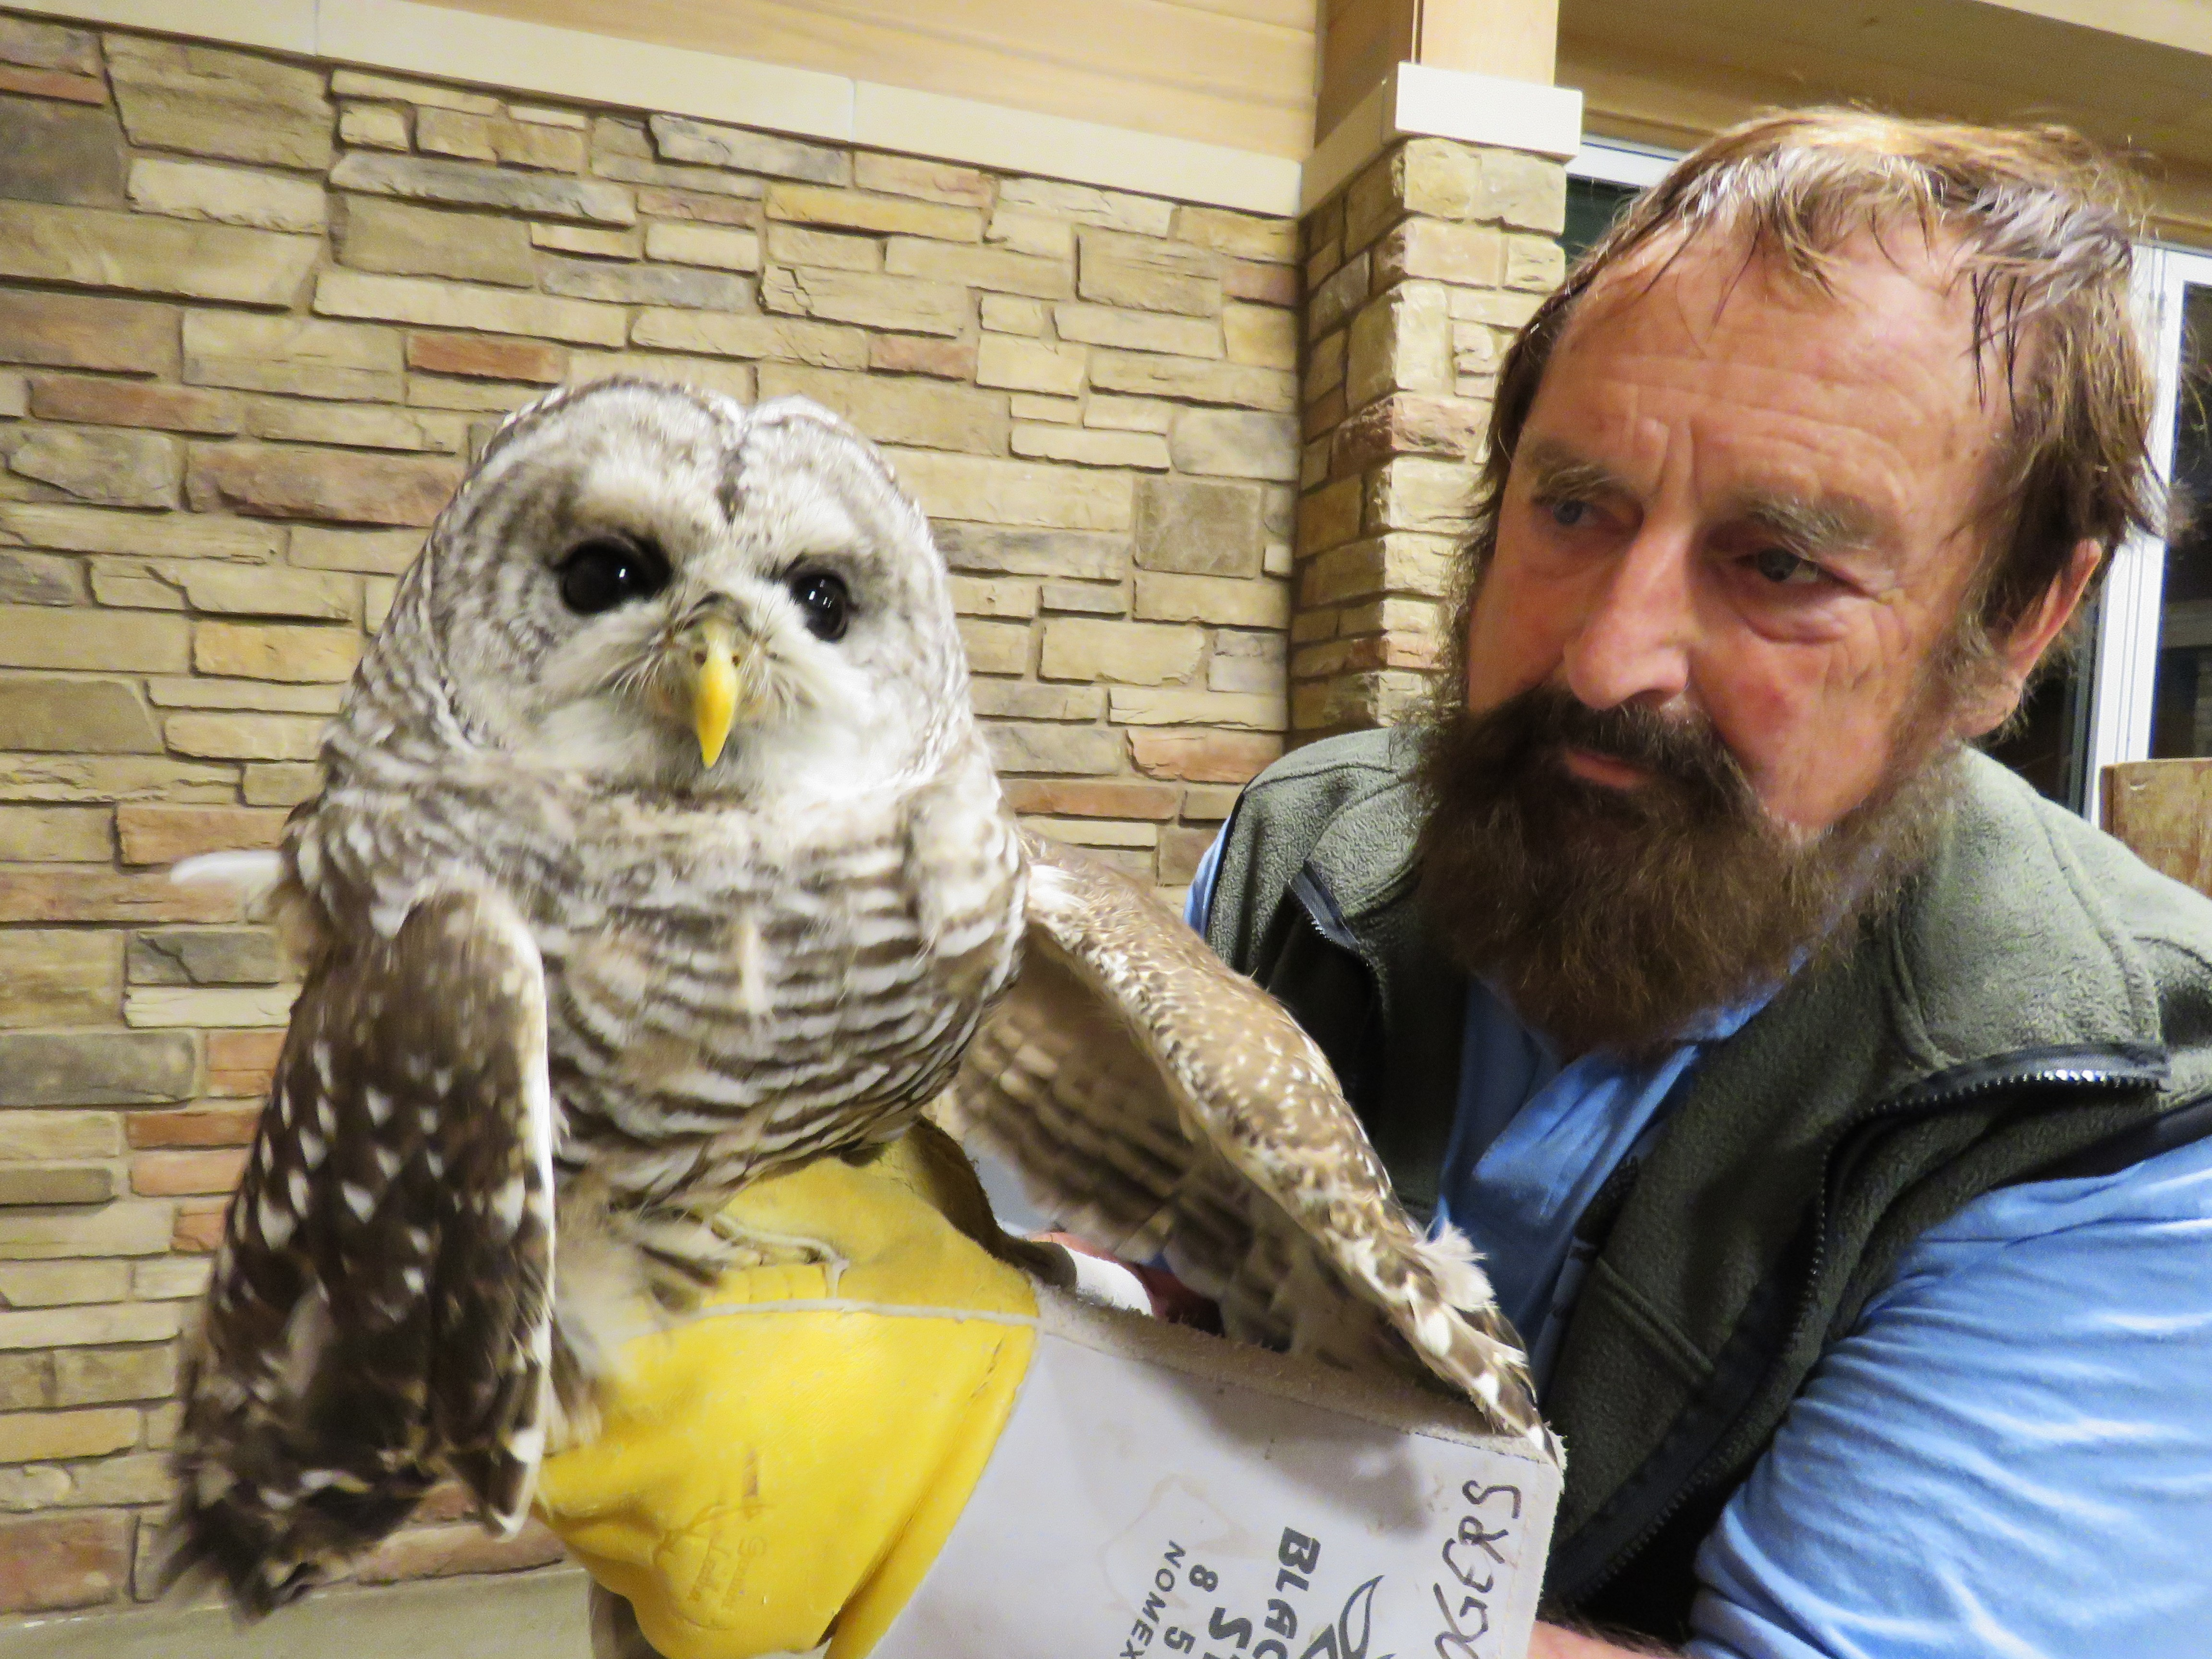 A nature educator holds a barred owl that is perched on his gloved hand. The owl has brown-and-white-striped plumage, brown eyes, and a yellow beak.